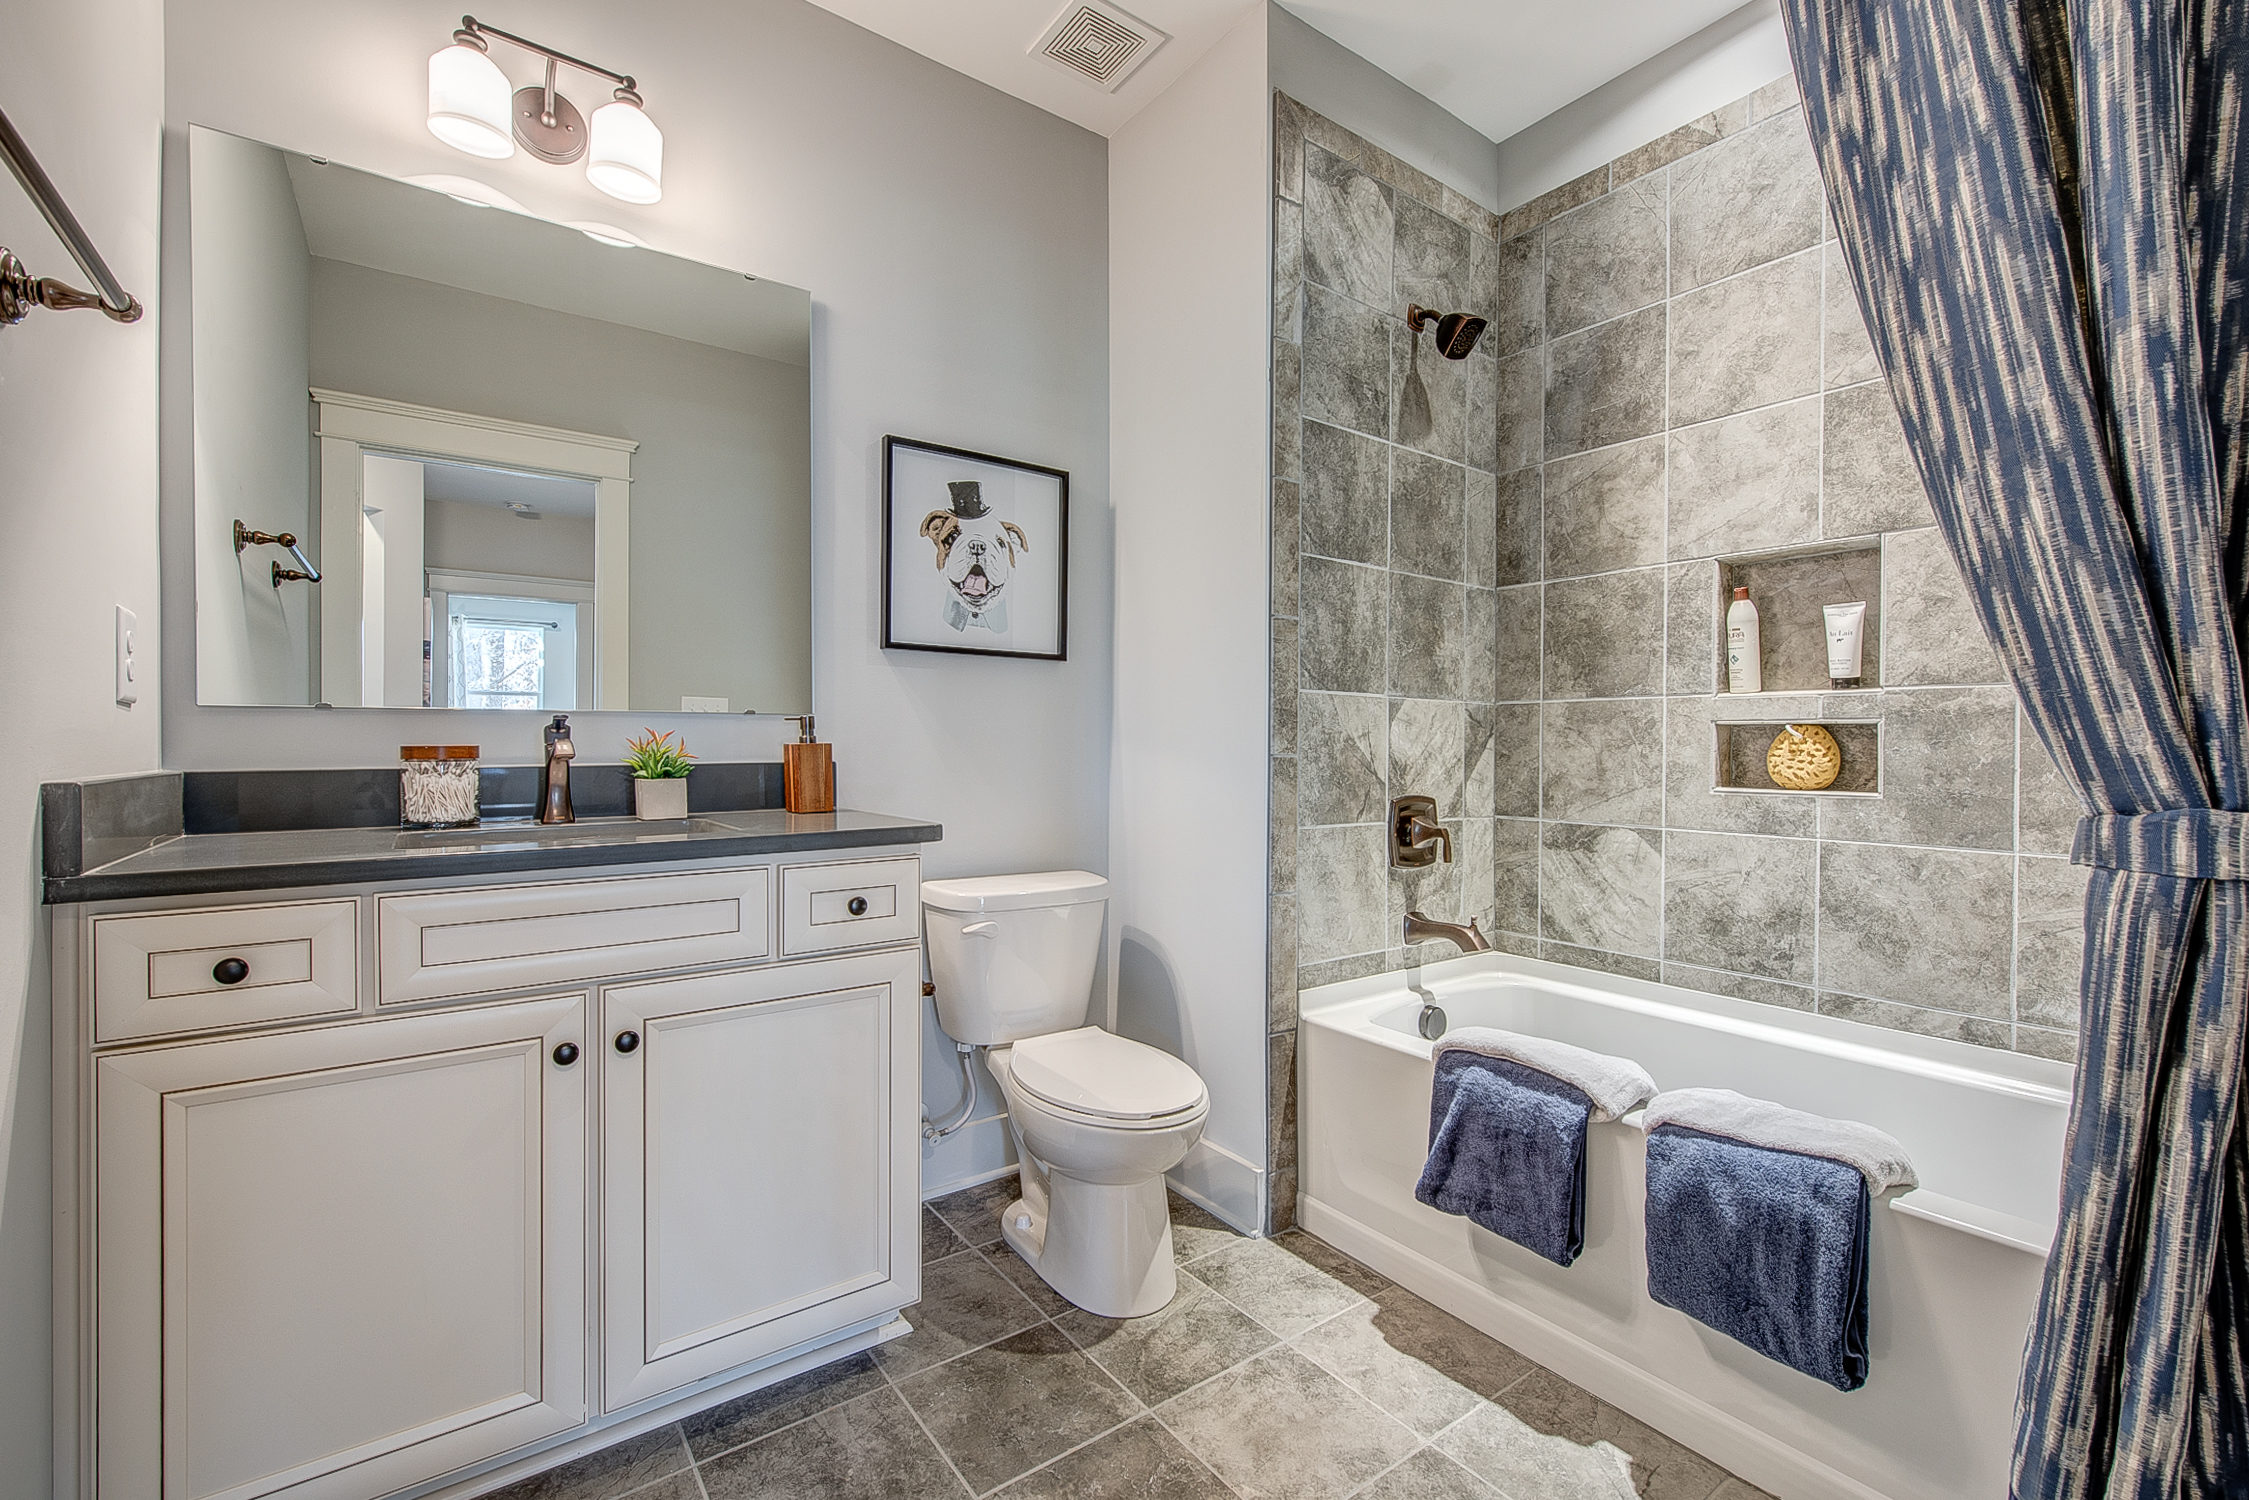 104-bushney-loop-mooresville-print-036-32-lower-level--bathroom-2249x1500-300dpi_32914681964_o.jpg